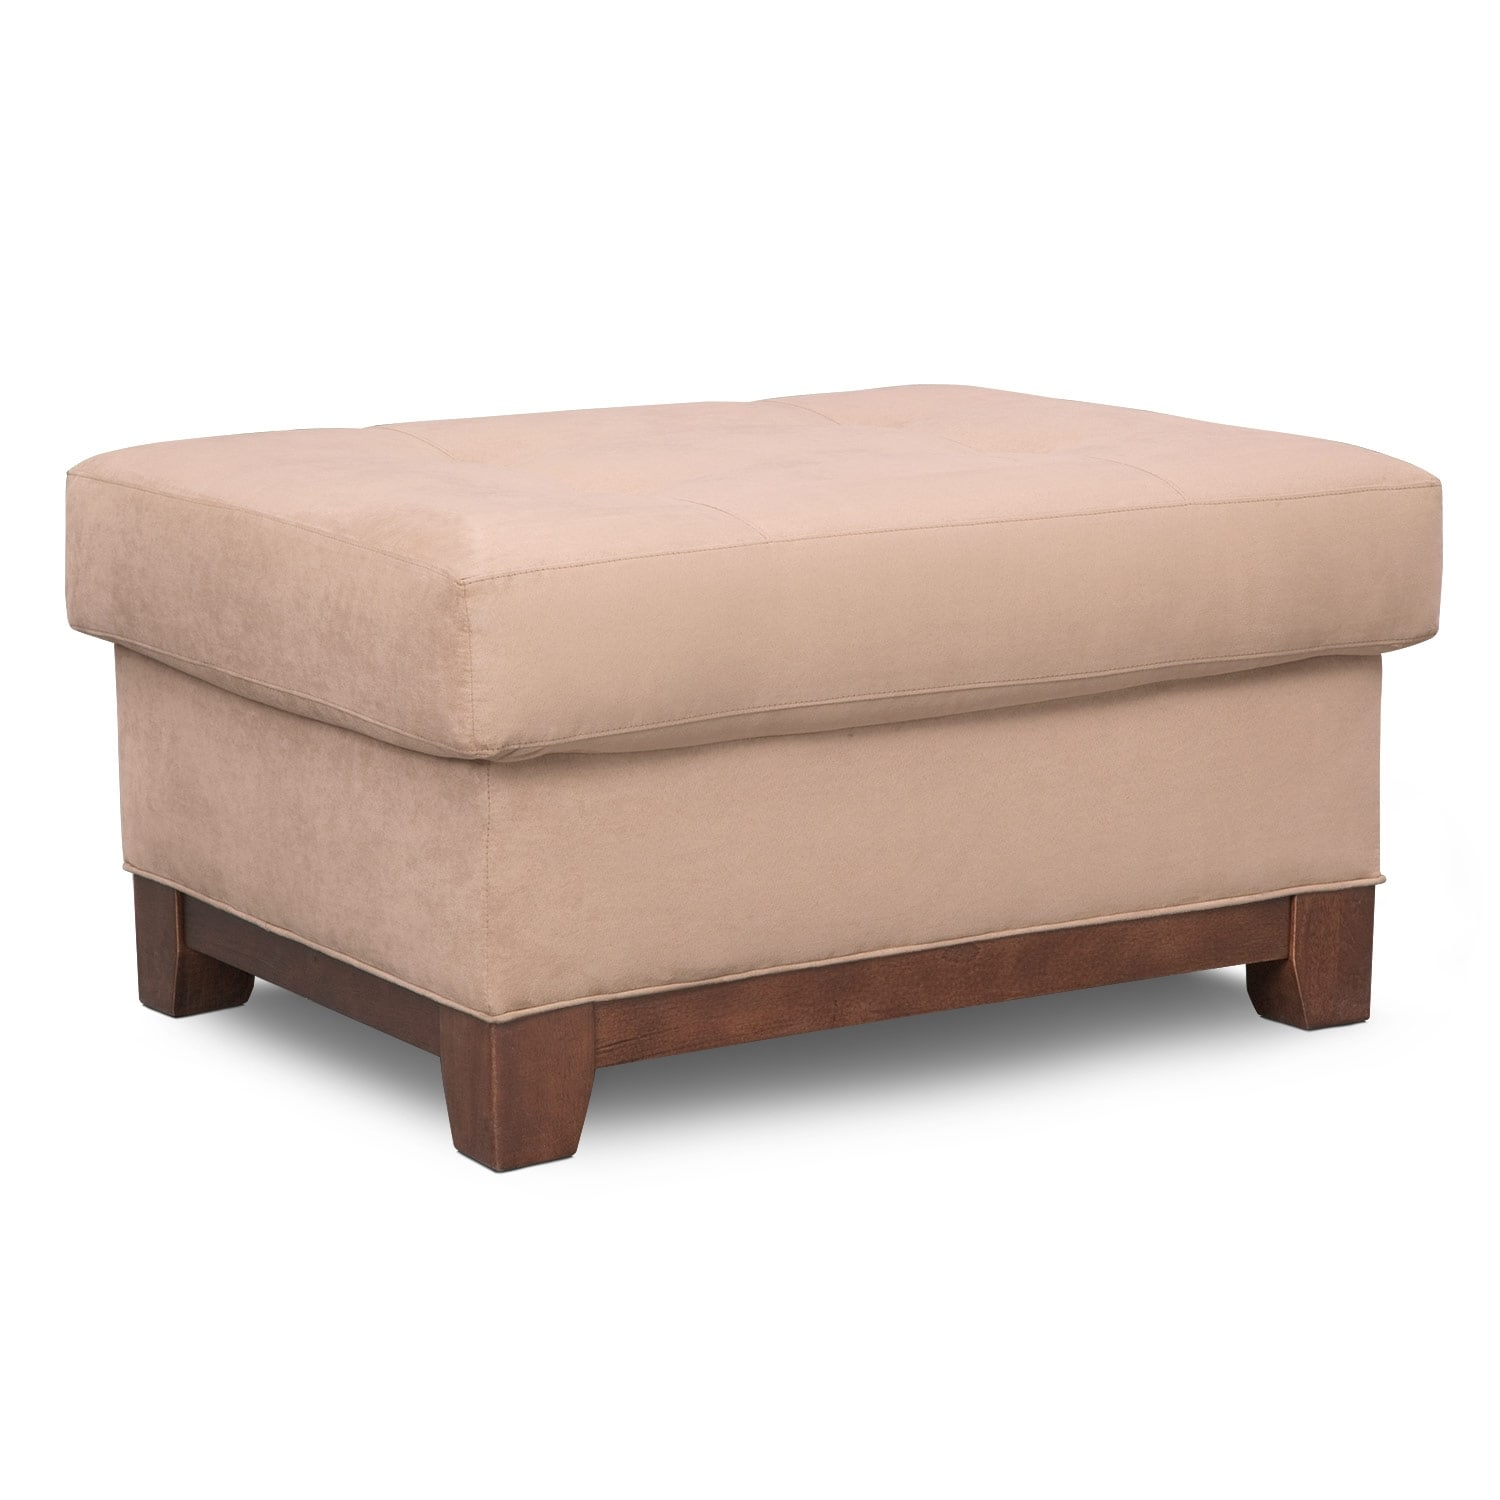 Living Room Furniture - Soho Ottoman - Cobblestone